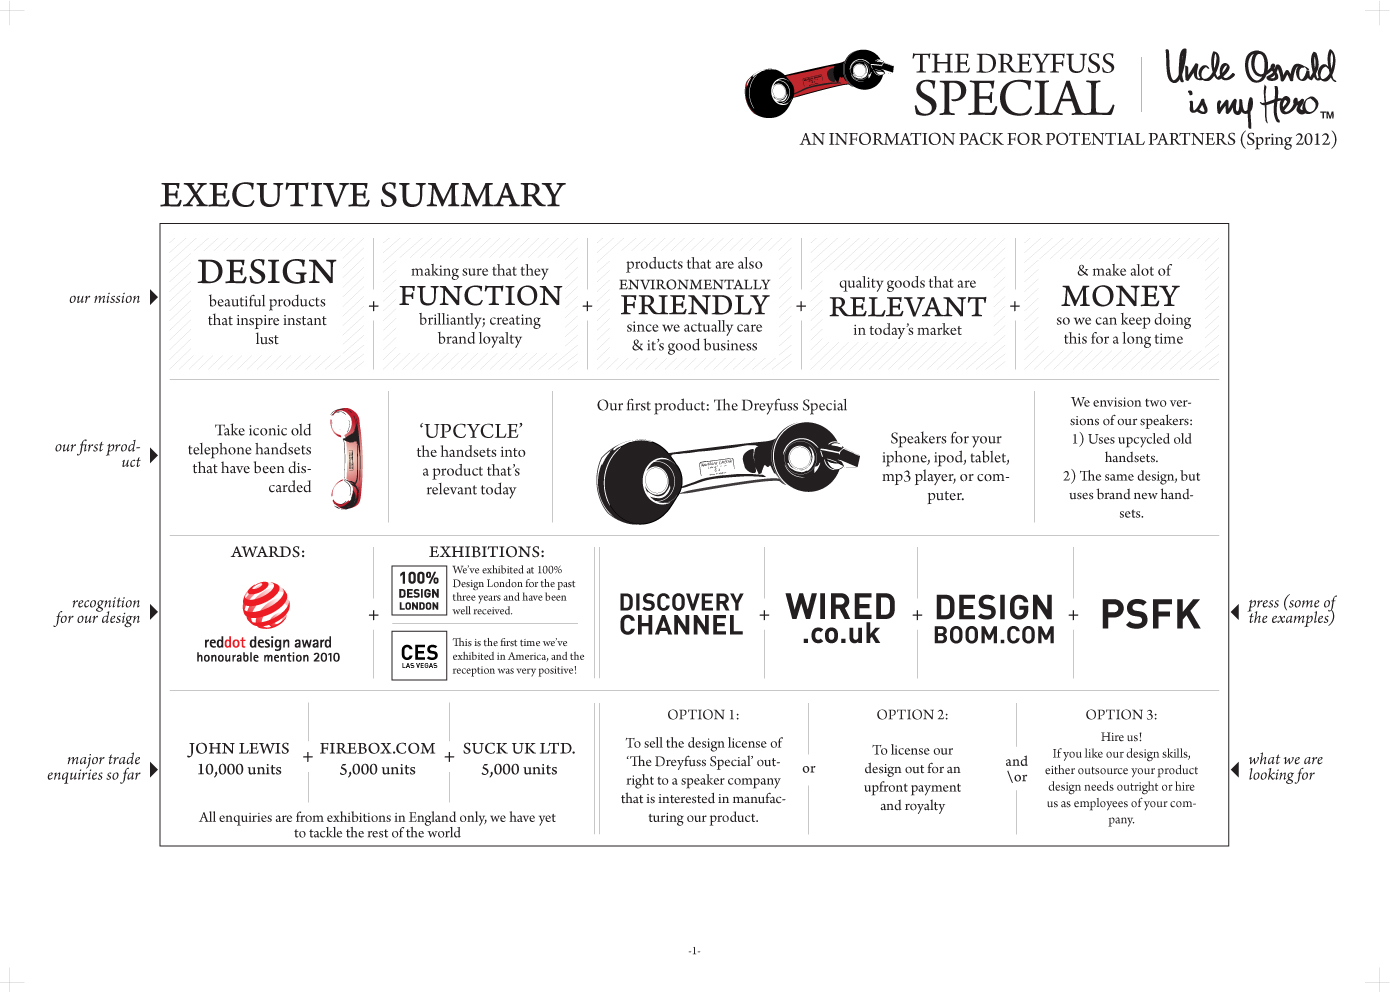 A sample page from the investor presentation I designed.  Click to view a larger version.